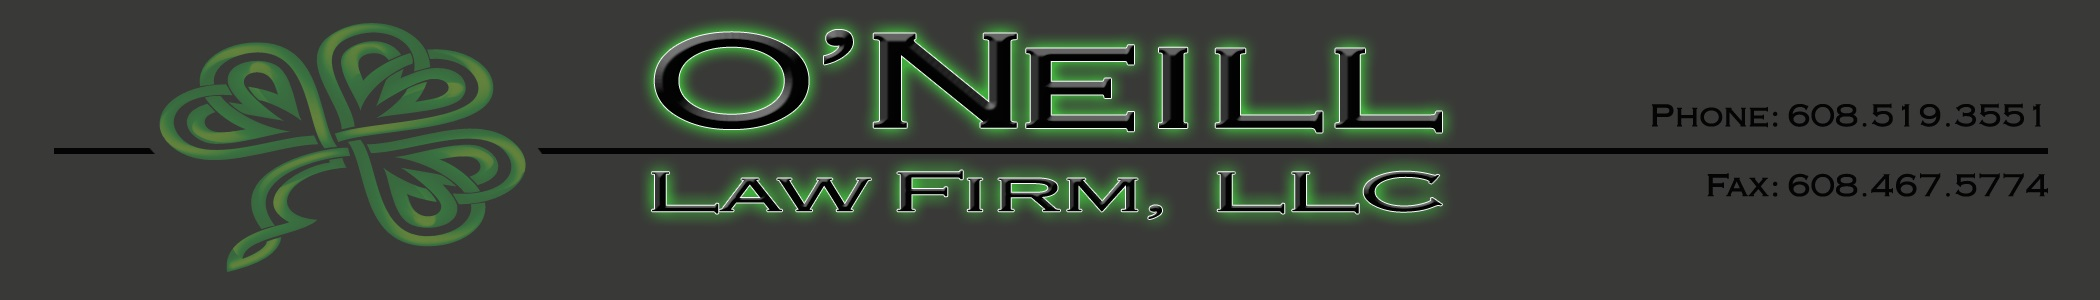 O'Neill Law Firm